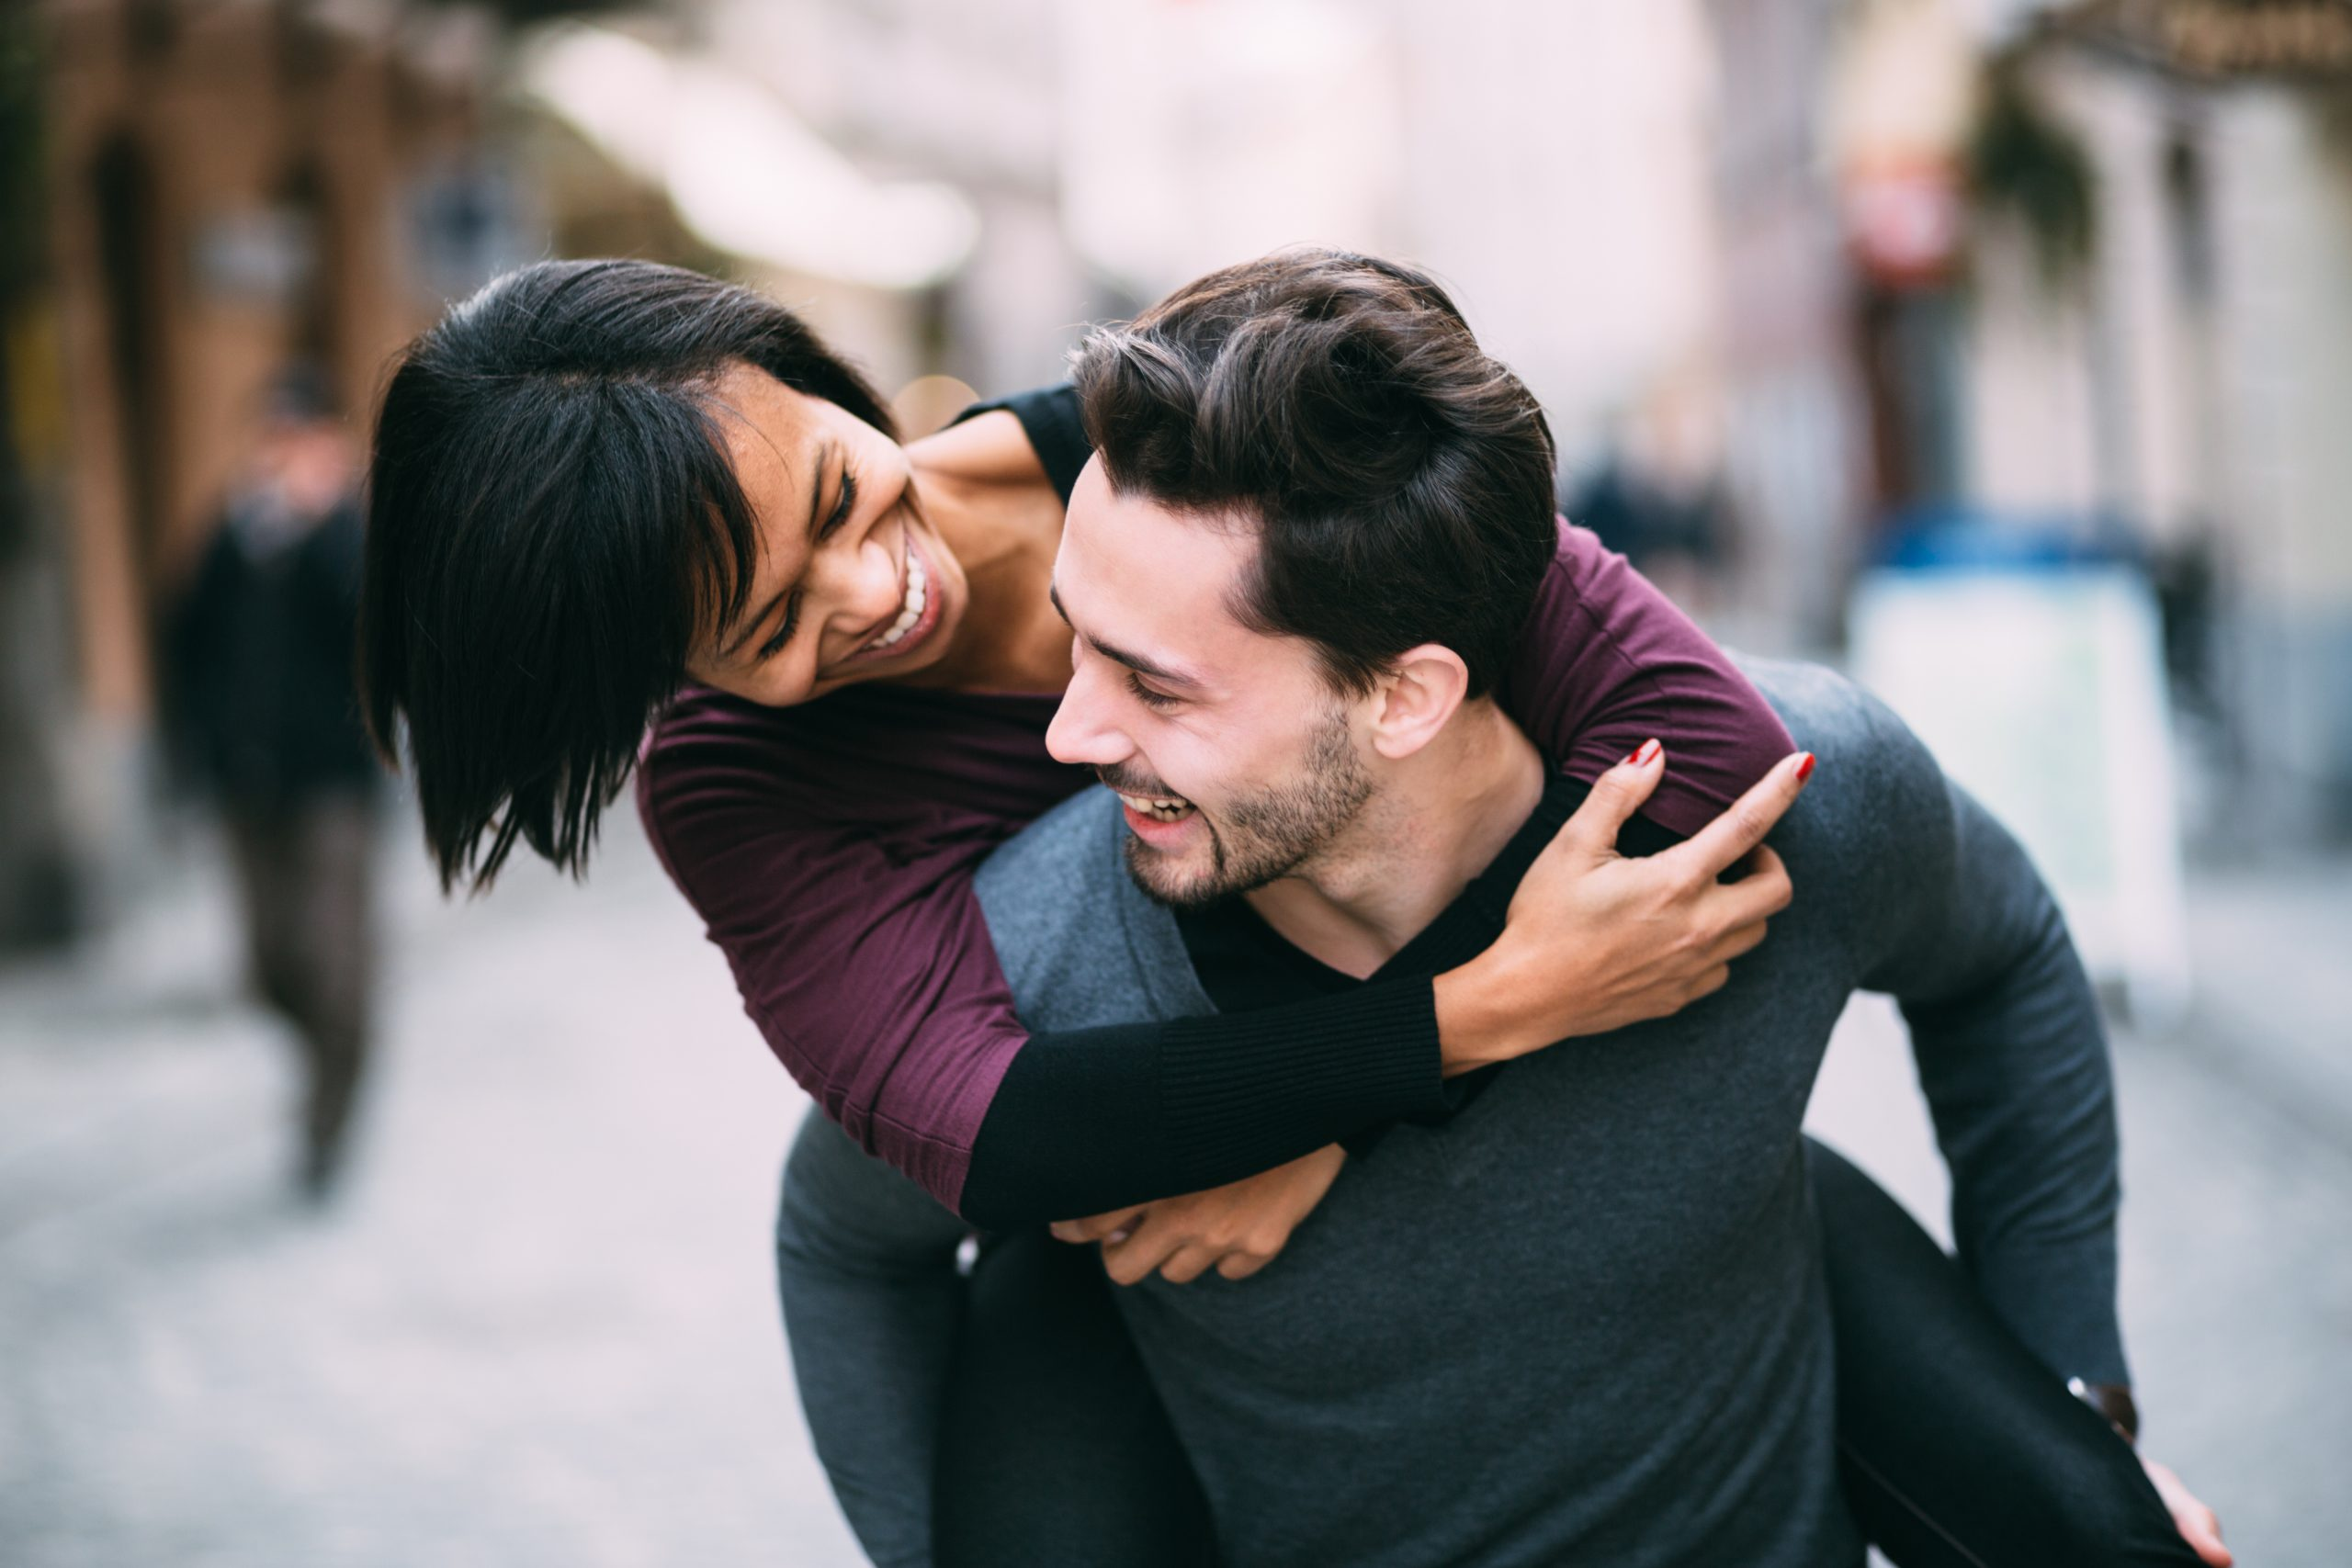 How to Make Your Relationship Last